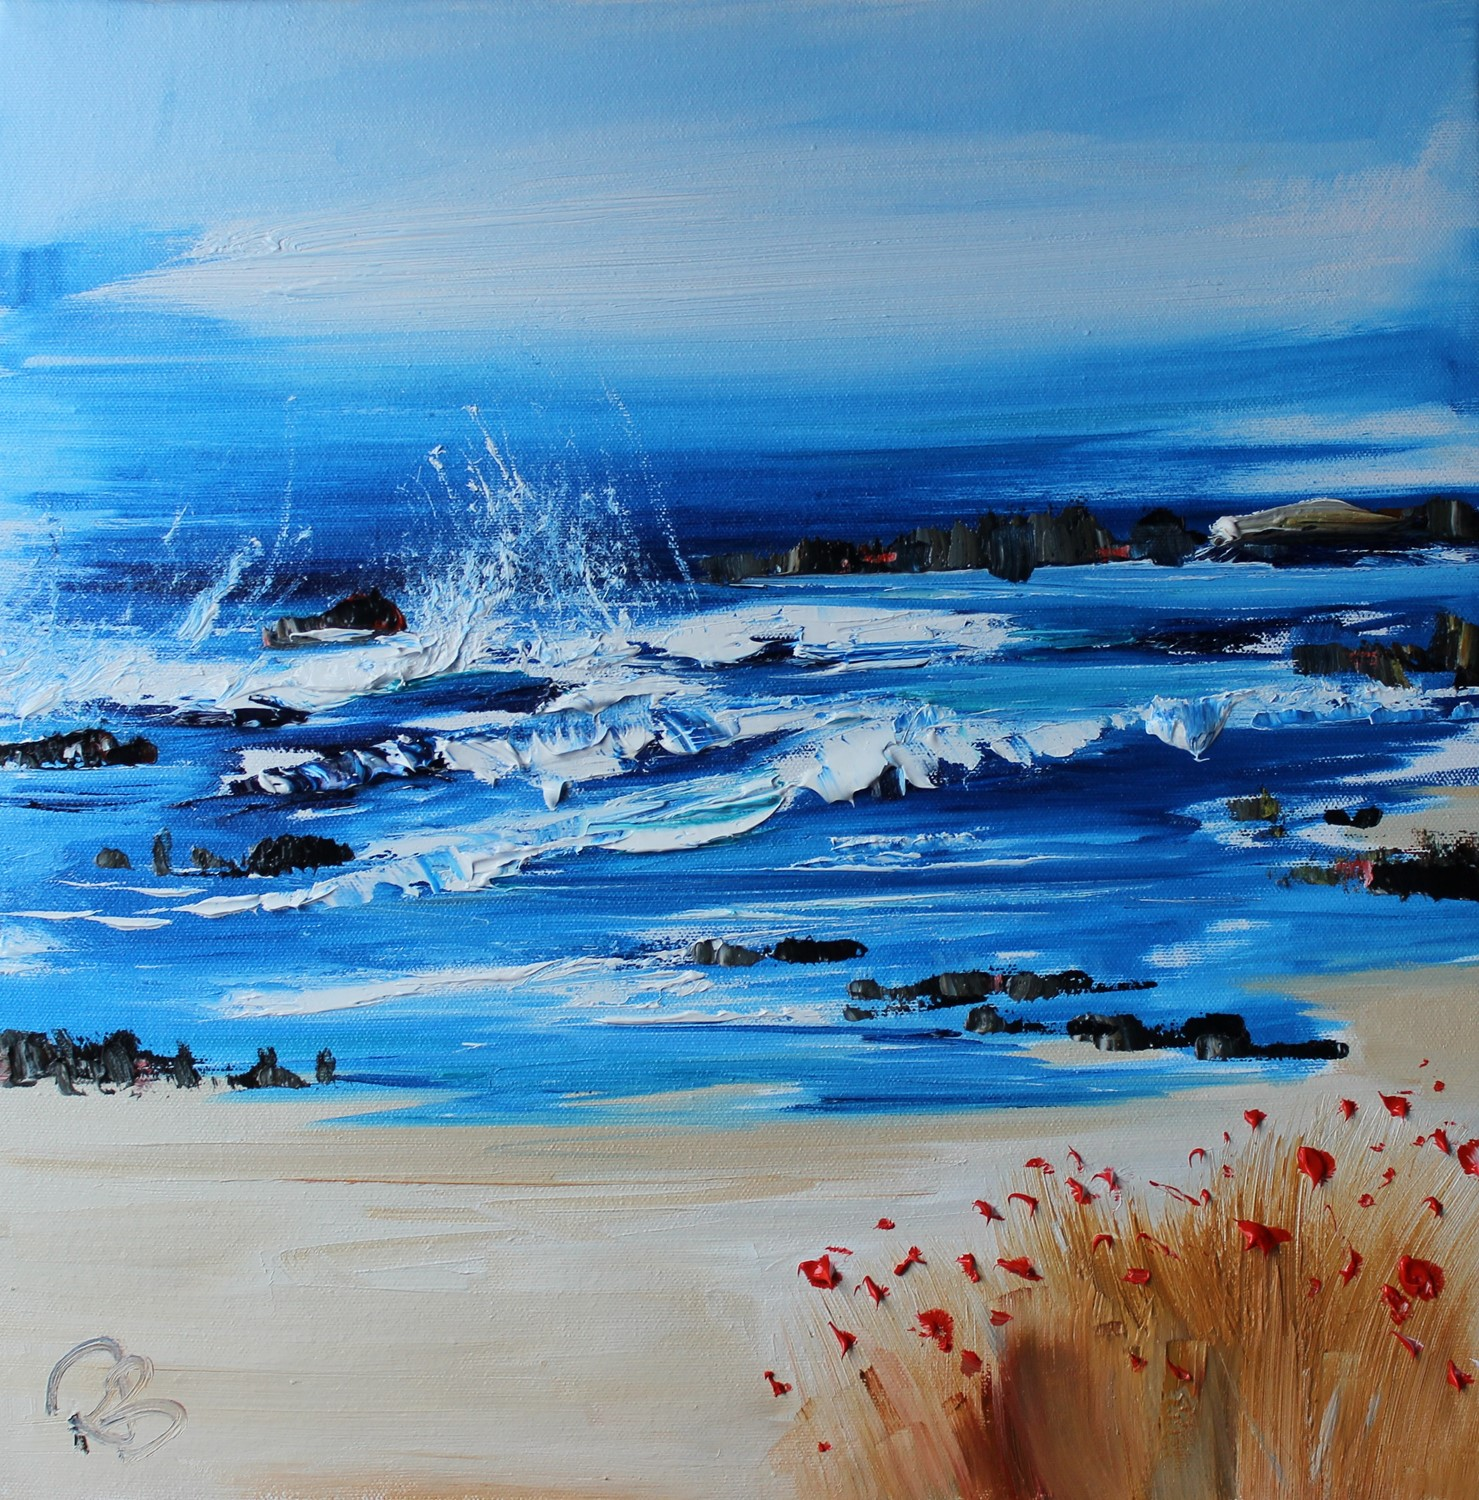 'Surf and Sea spray' by artist Rosanne Barr